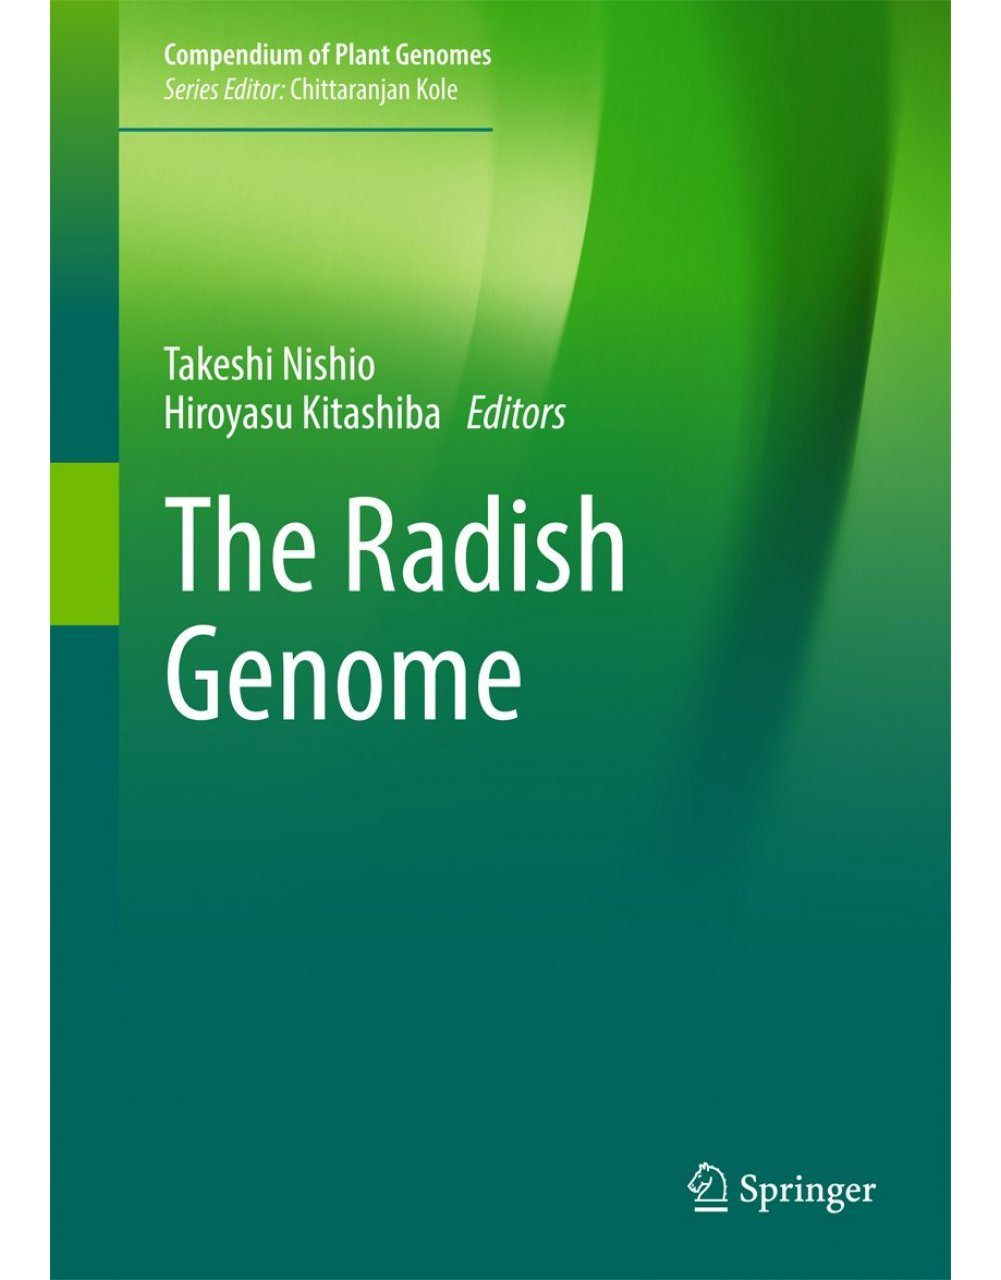 The Radish Genome